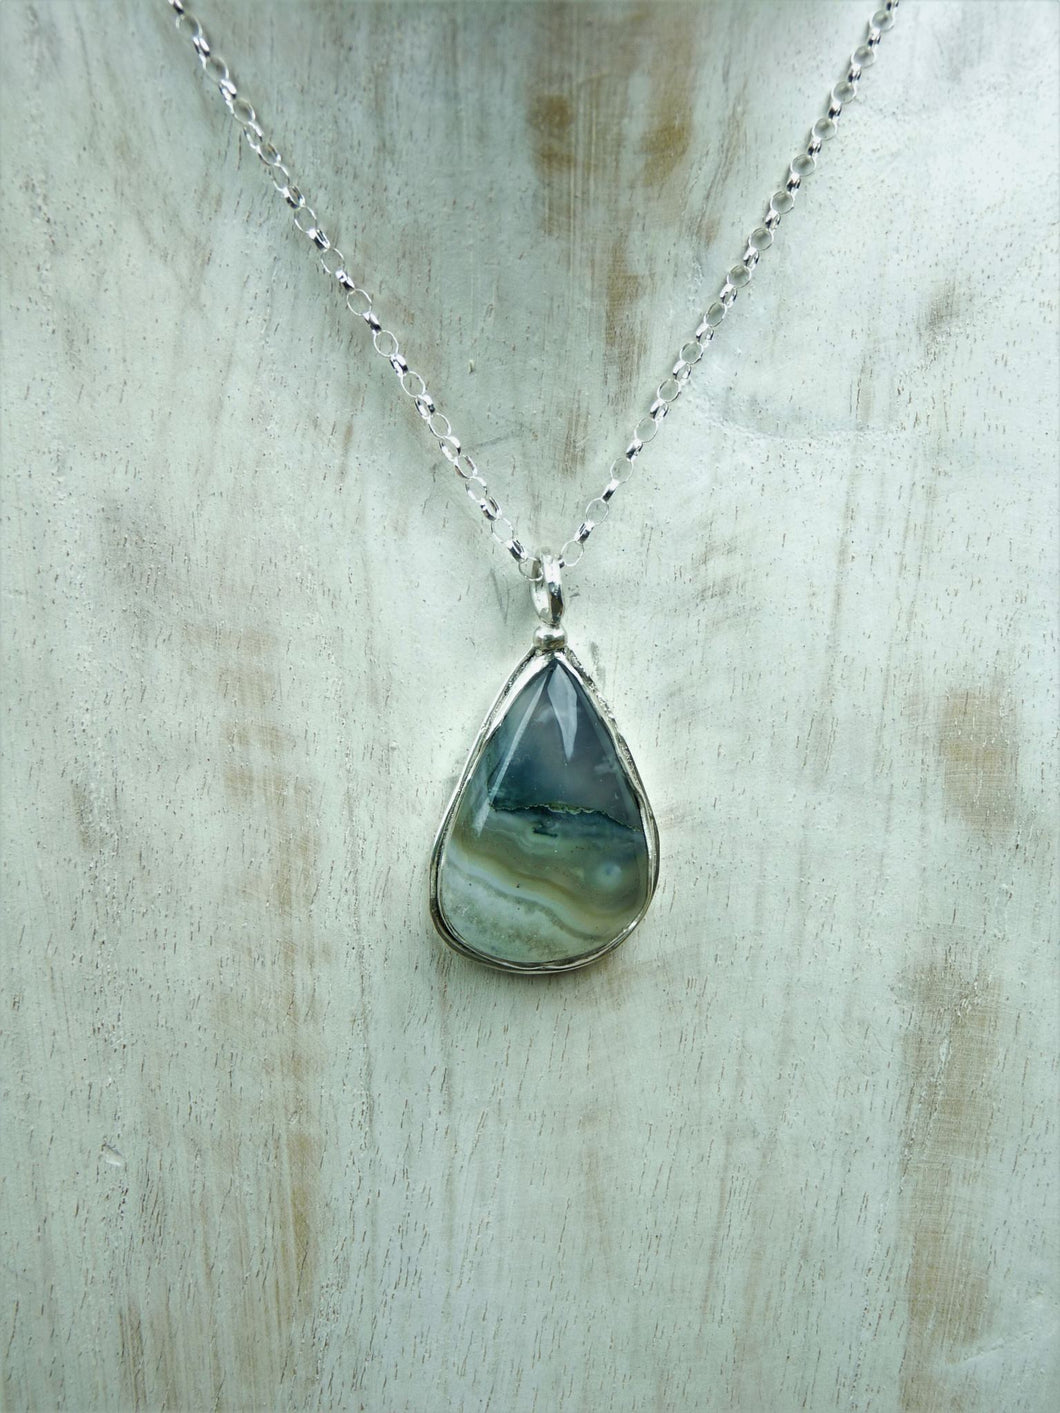 sil shape silver japa home product agate a moss jewellery necklace sterling teardrop